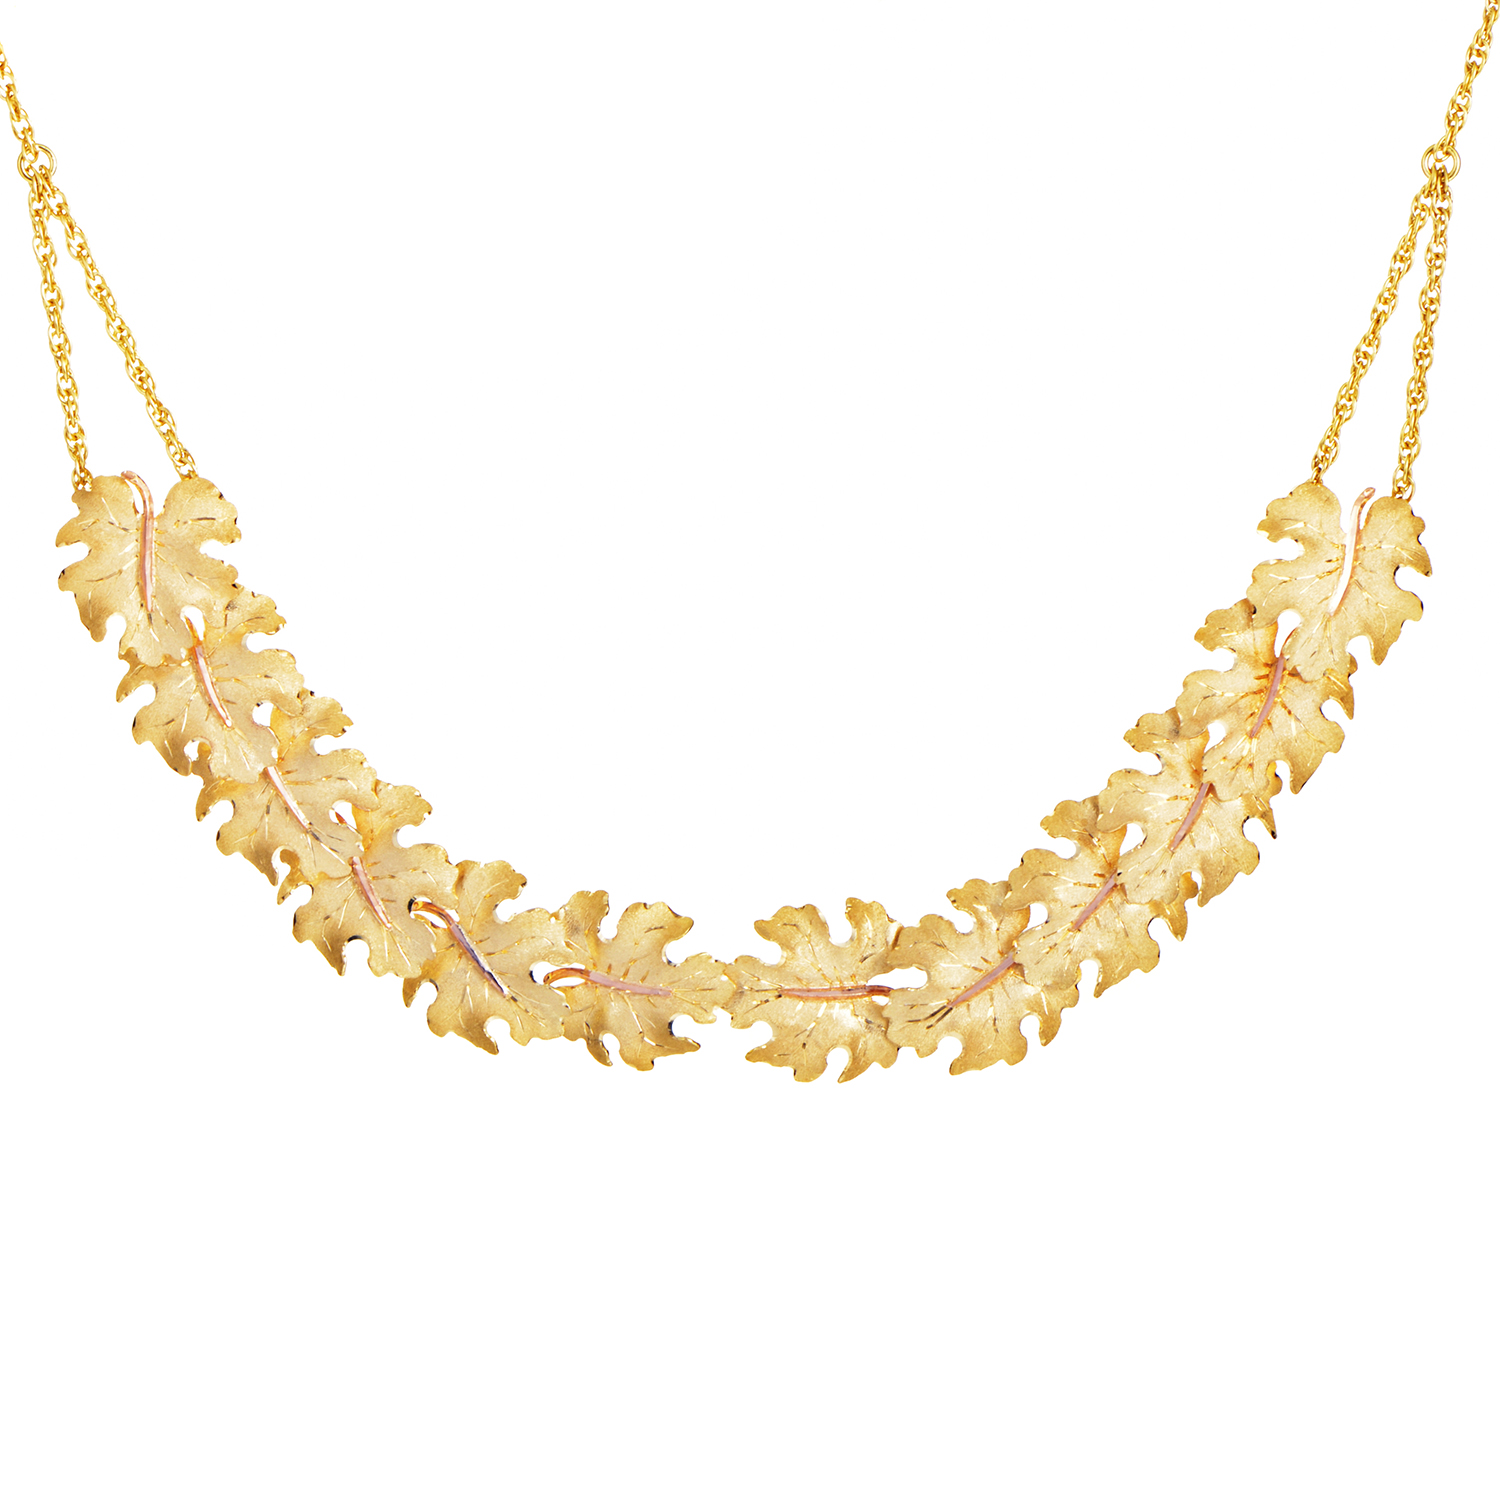 Foglie Acanto 18K Yellow Gold Necklace L5728